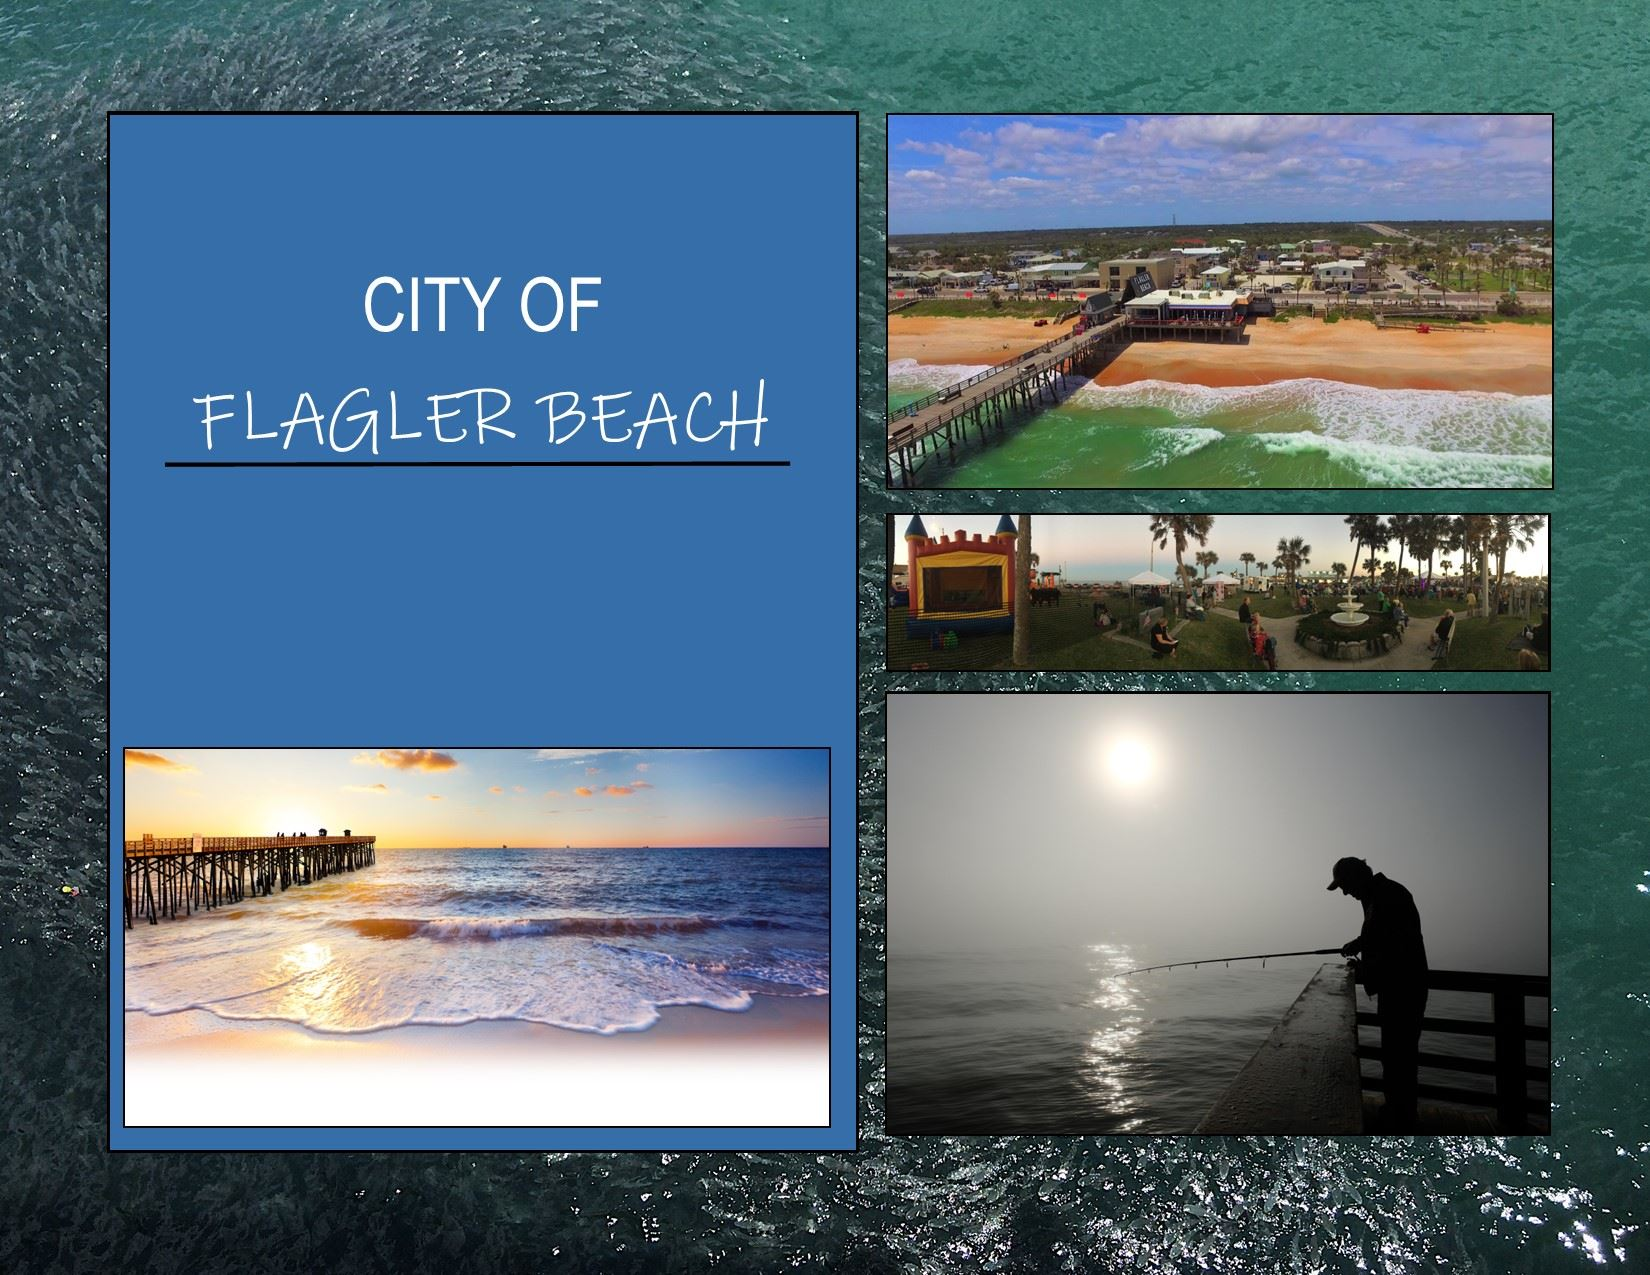 City of Flagler Beach Manager Profile